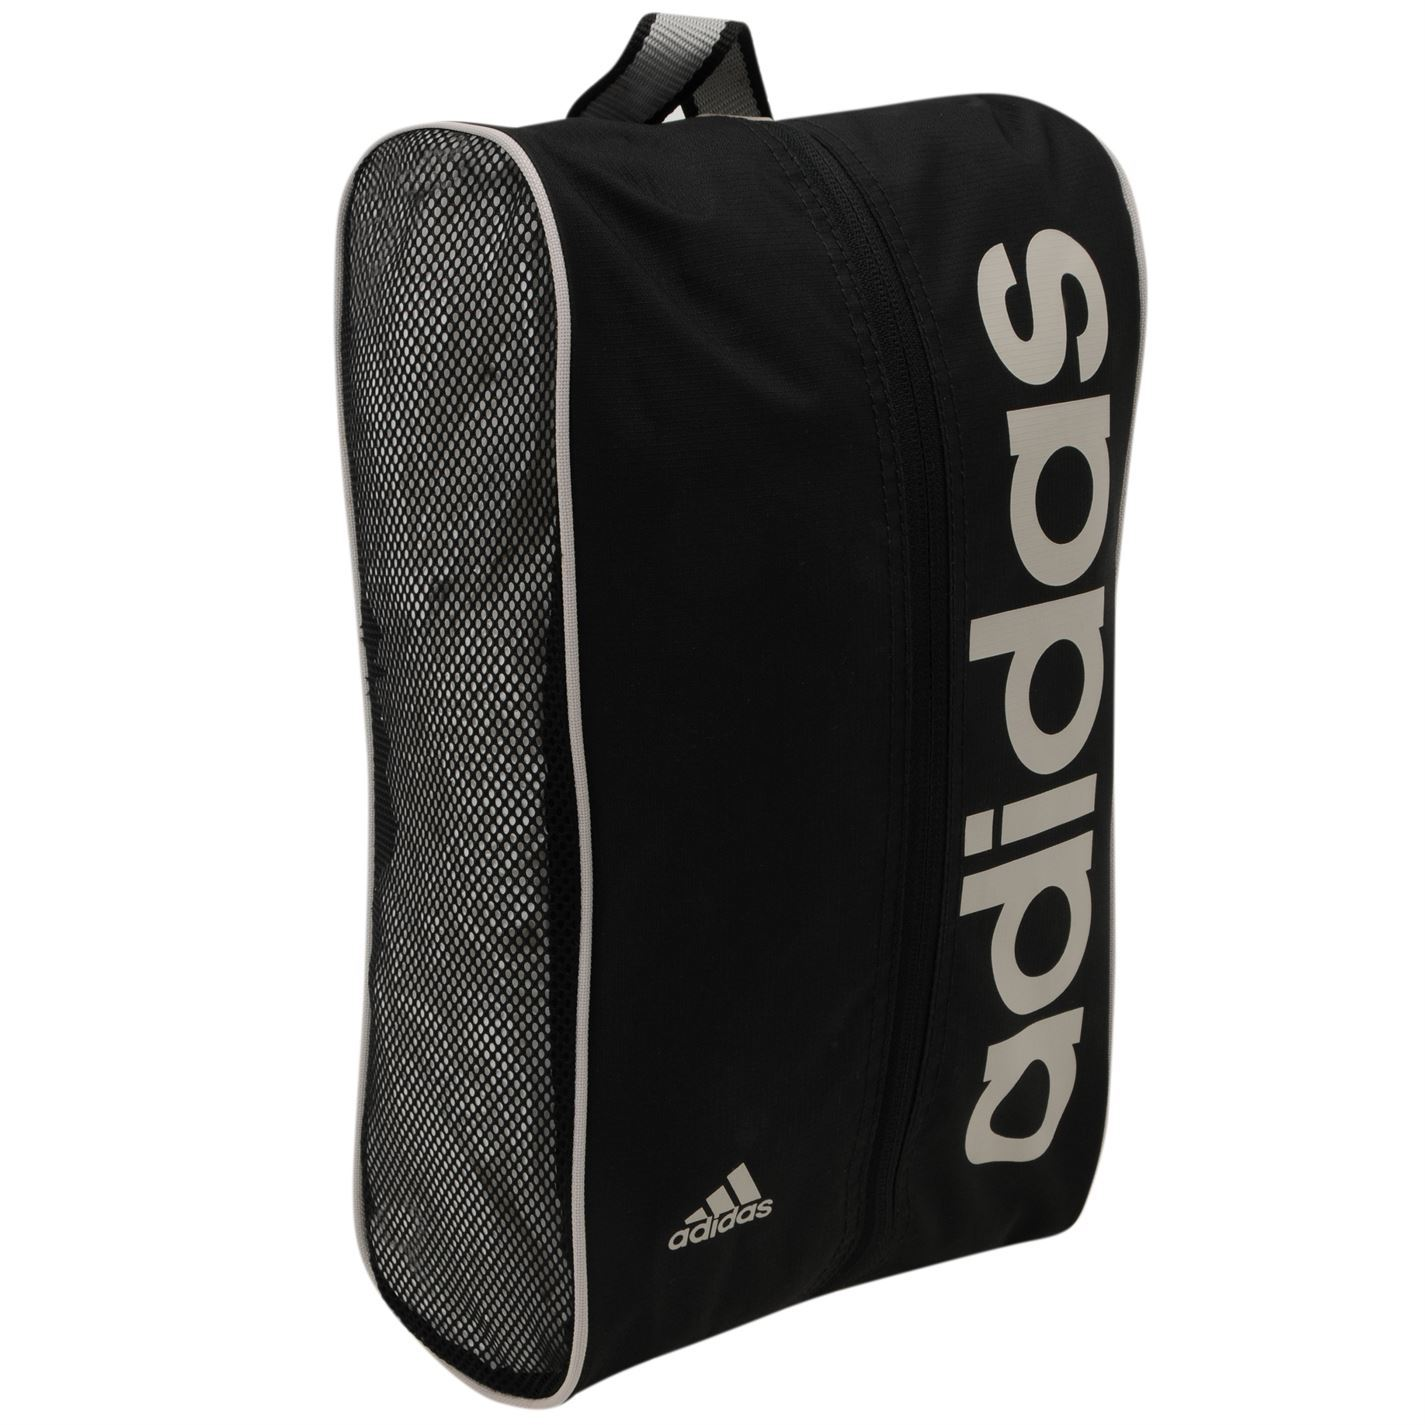 Price For Liverpool Shoe Bag